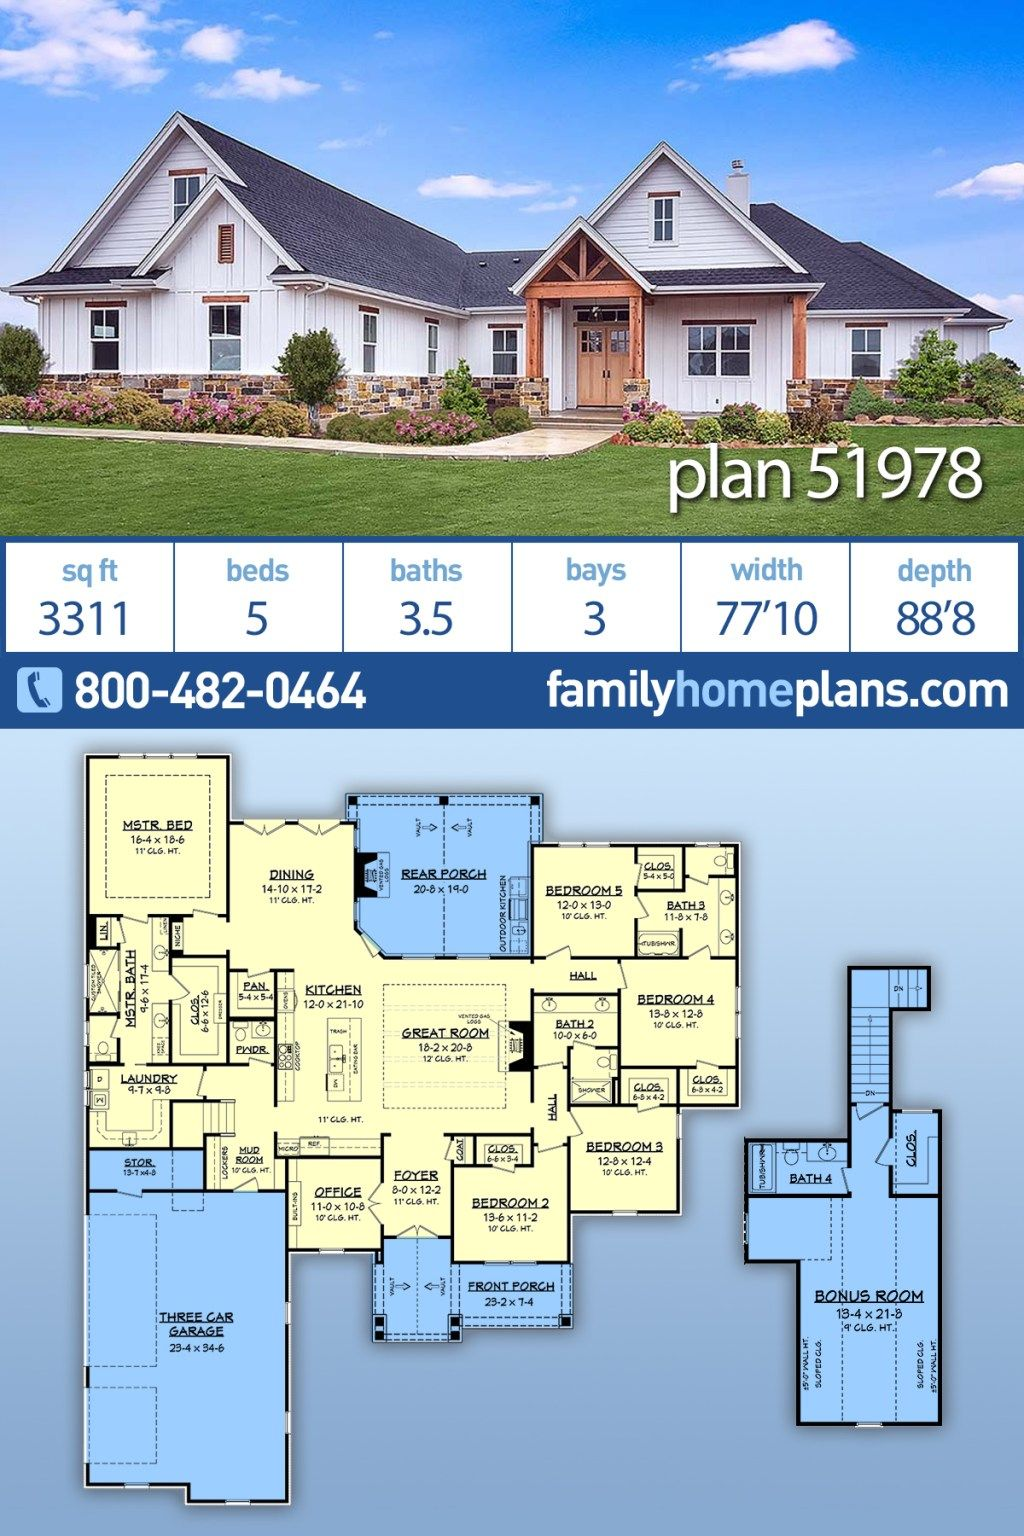 5 Bedroom Modern Craftsman Style Home Plan With Interior Photos Family Home Plans Blog In 2020 Craftsman House Plans Family House Plans House Plans Farmhouse